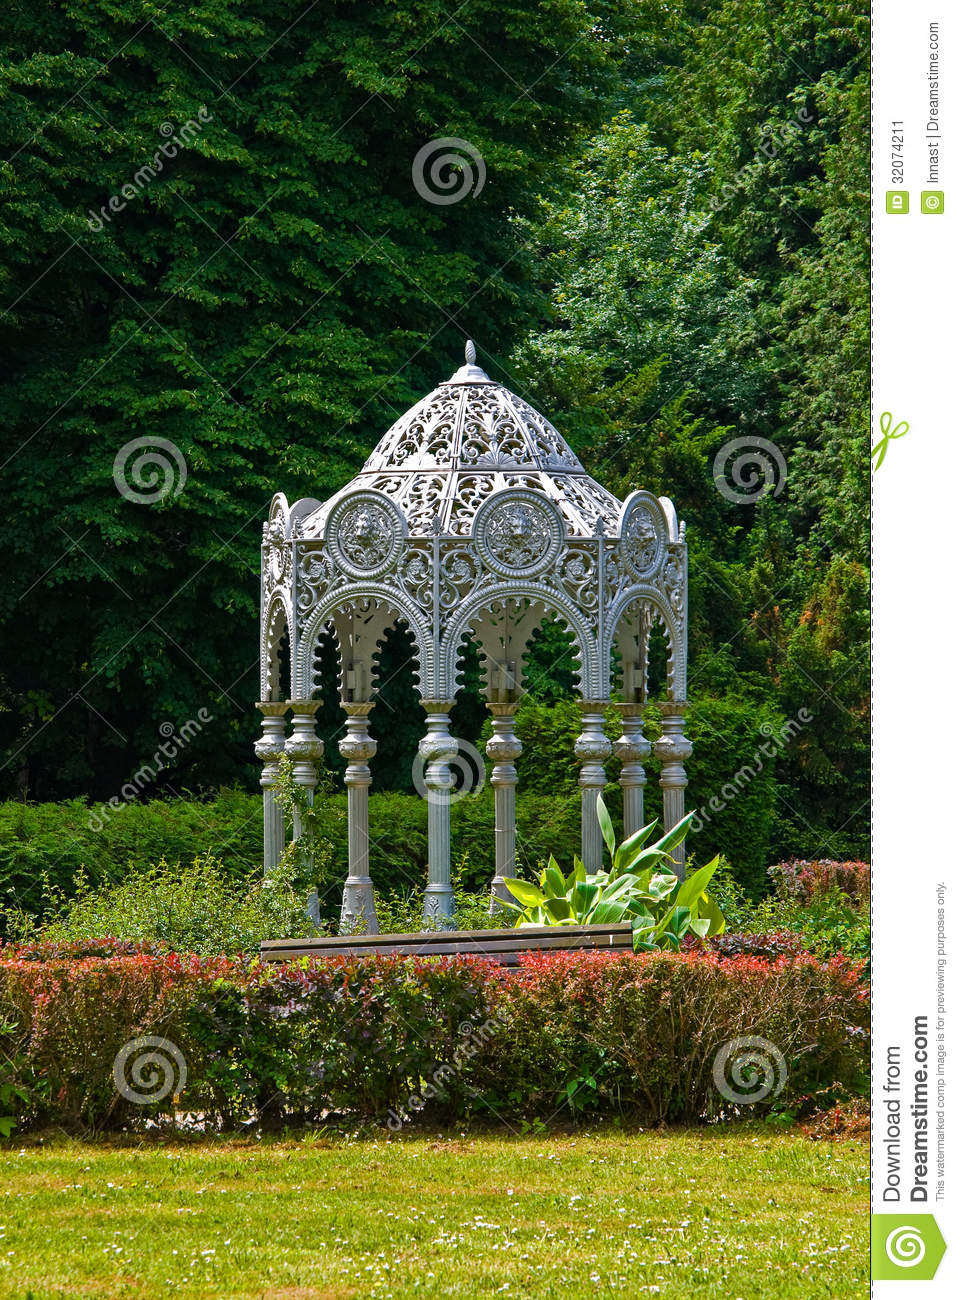 Arbor stock image  Image of exterior, park, travel, outdoors - 32074211